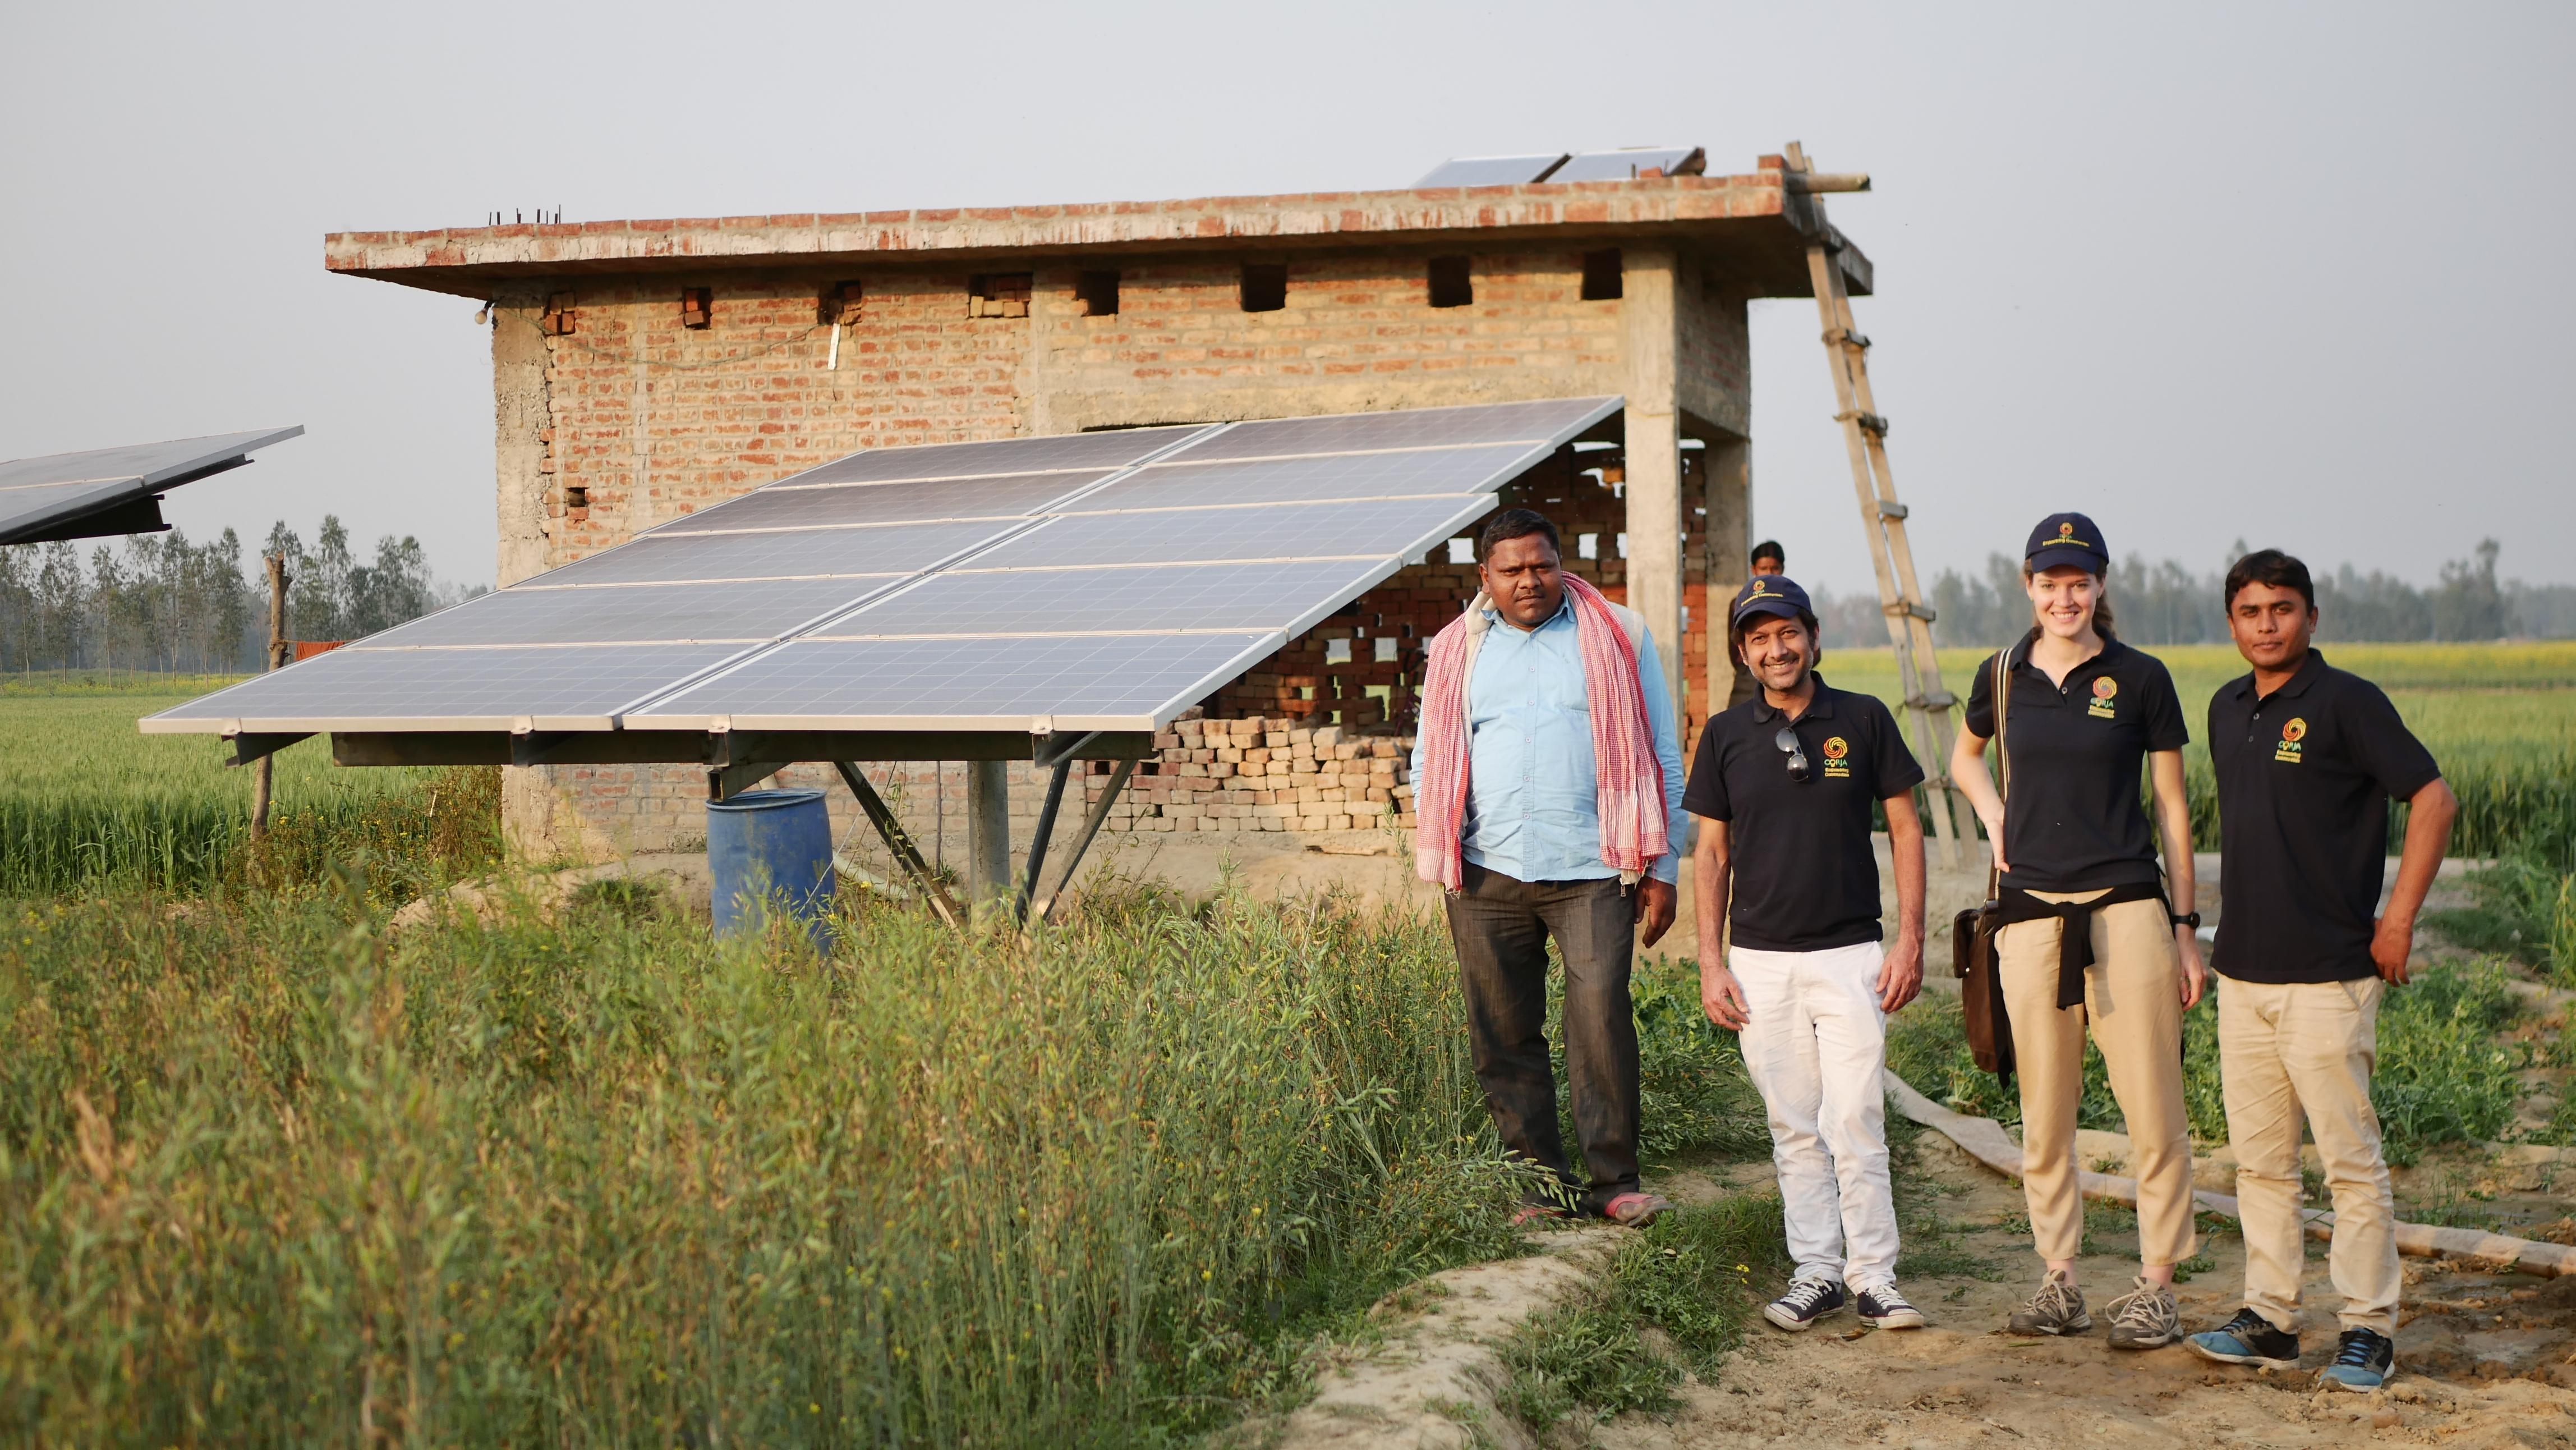 Solar irrigation solutions for smallholder farmers in India